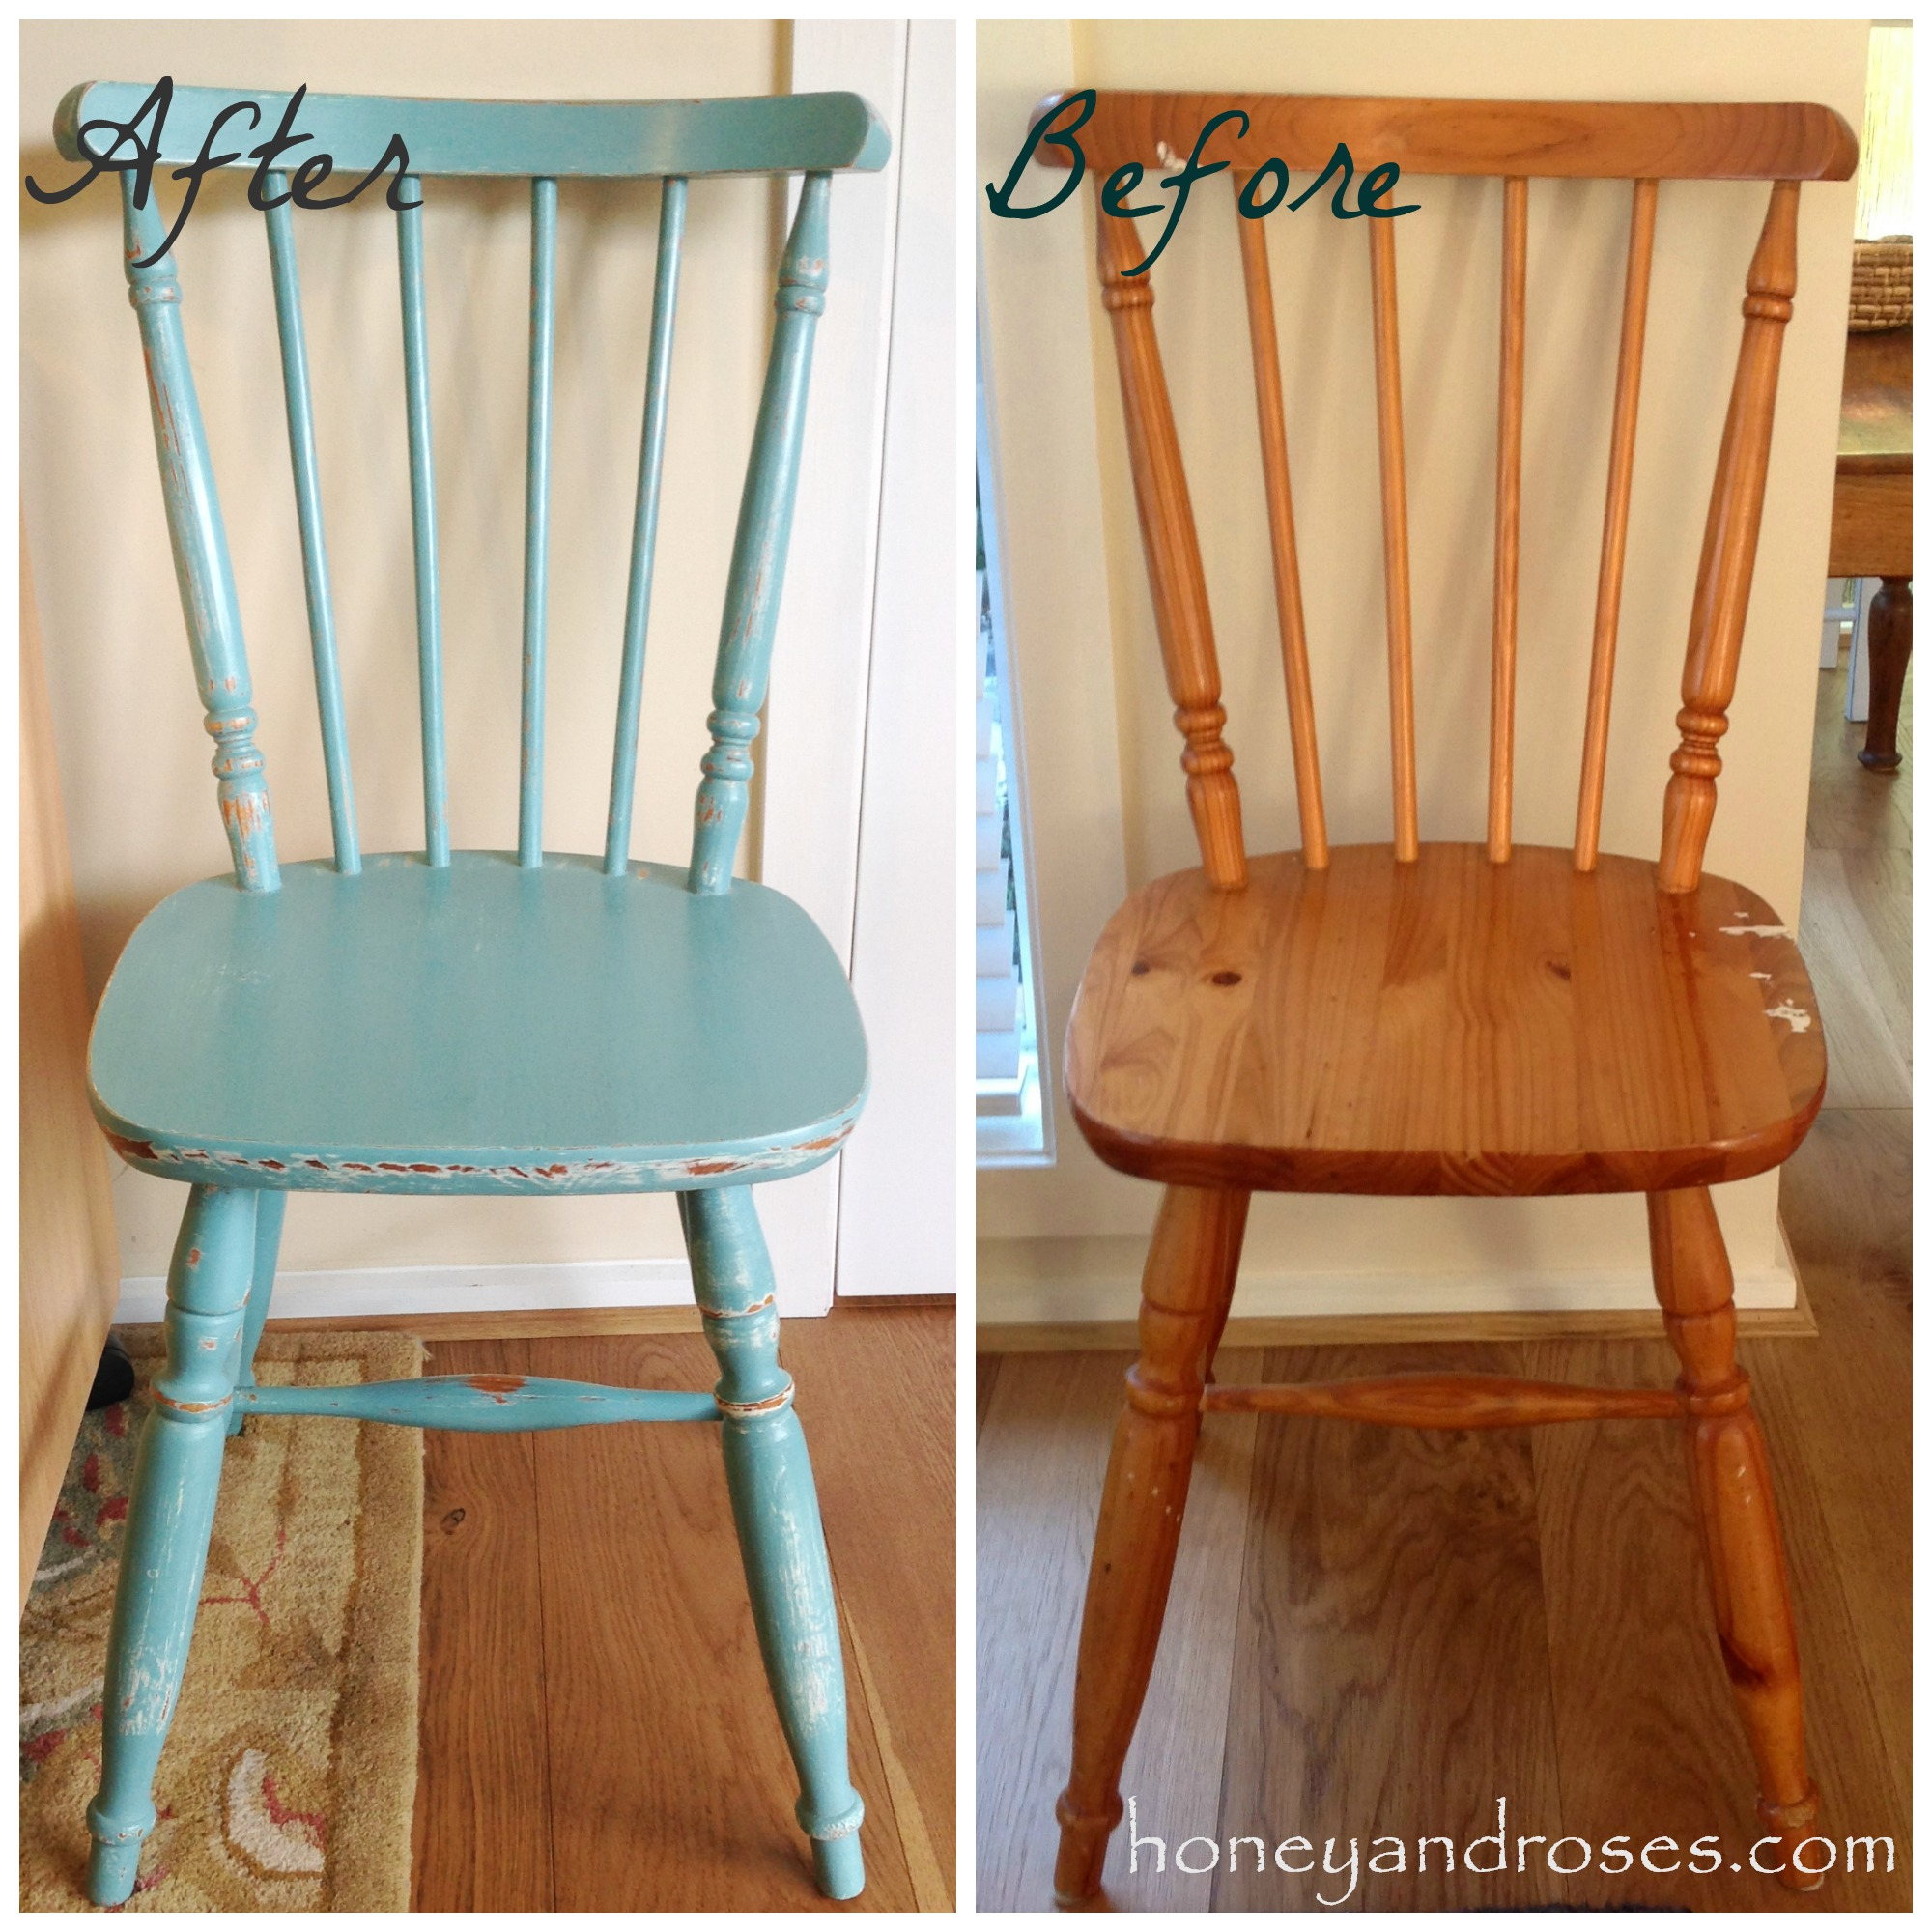 makeover of a pine kitchen chair using chalk paint turquoise kitchen chairs Makeover of a Pine Kitchen Chair uisng Chalk Paint